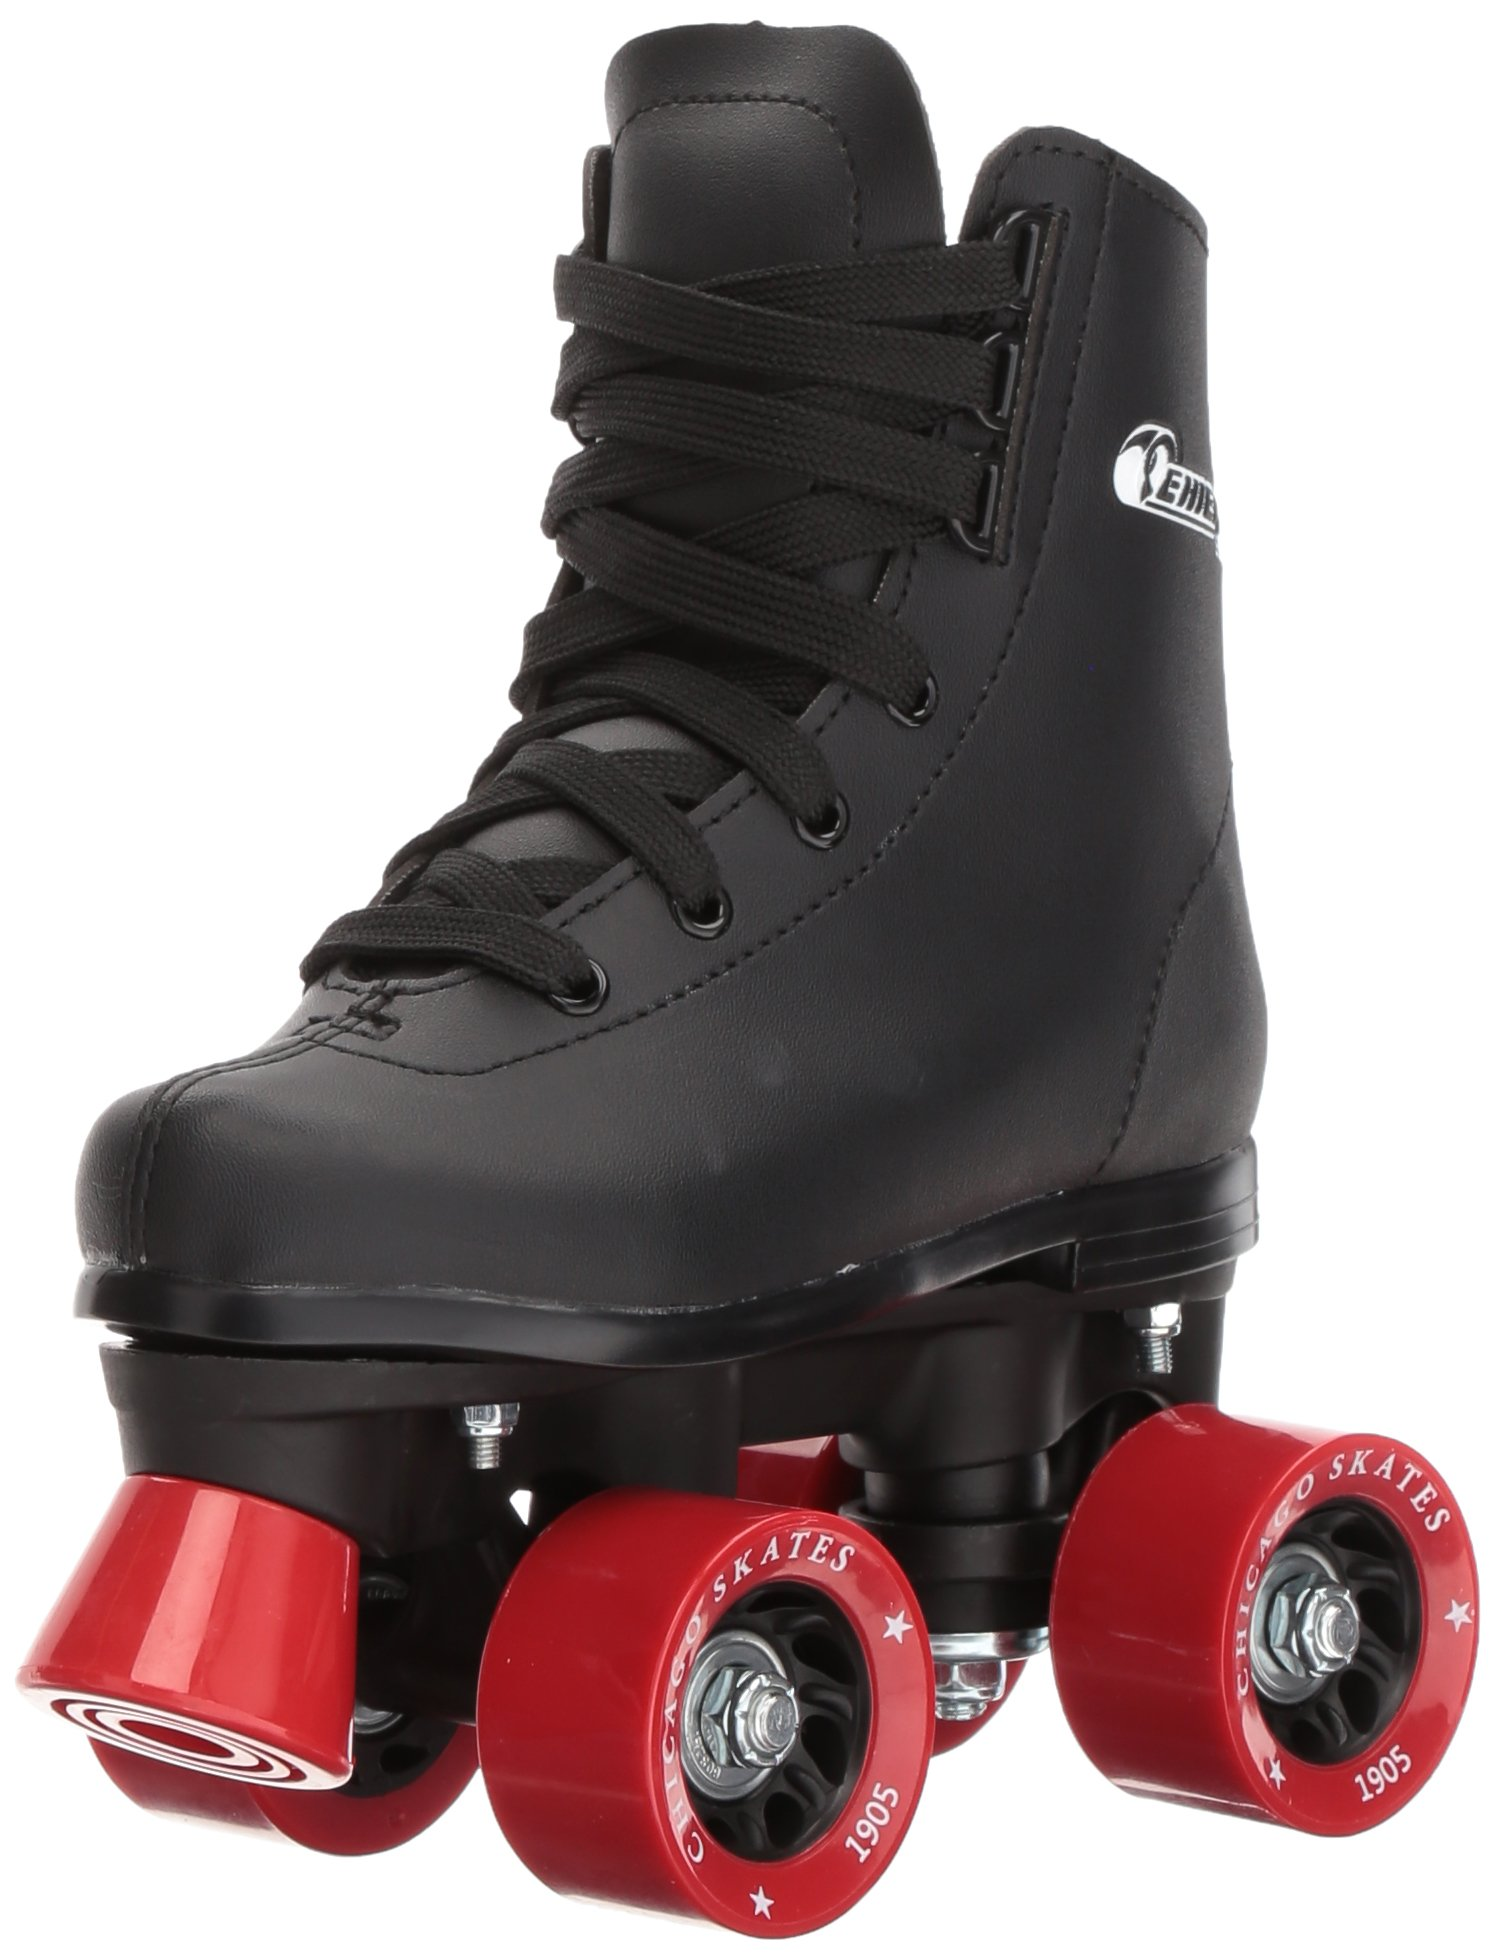 Chicago Boys Rink Roller Skate (Size 3), Black by Chicago Skates